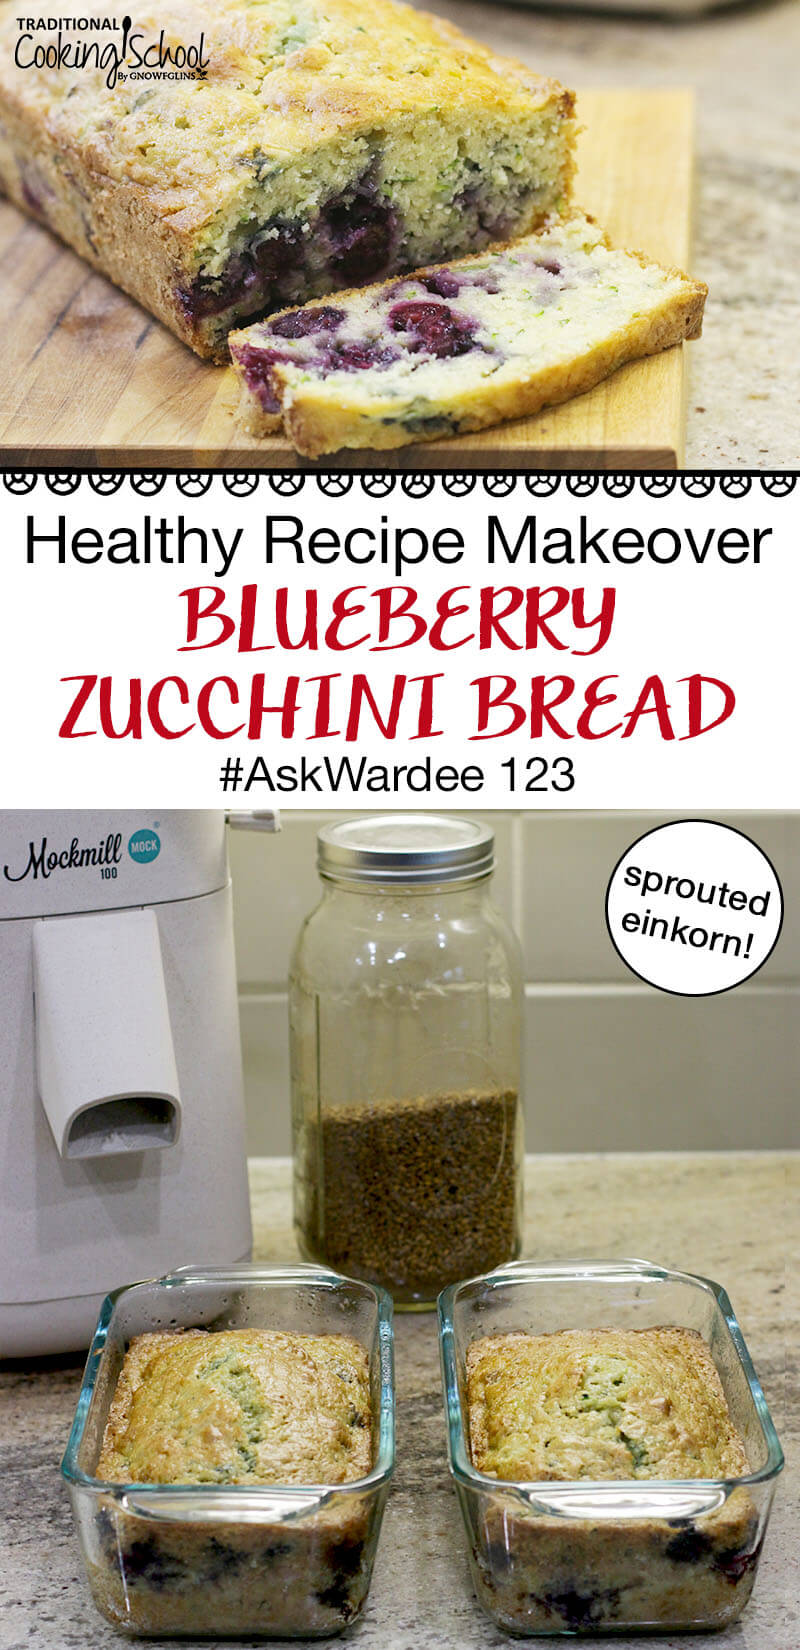 "Loaf pan with blueberry zucchini bread on a cooling rack with Mockmill grain mill and a jar of einkorn grain in the background. Text overlay says, ""Healthy Recipe Makeover Blueberry Zucchini Bread #AskWardee 123""."